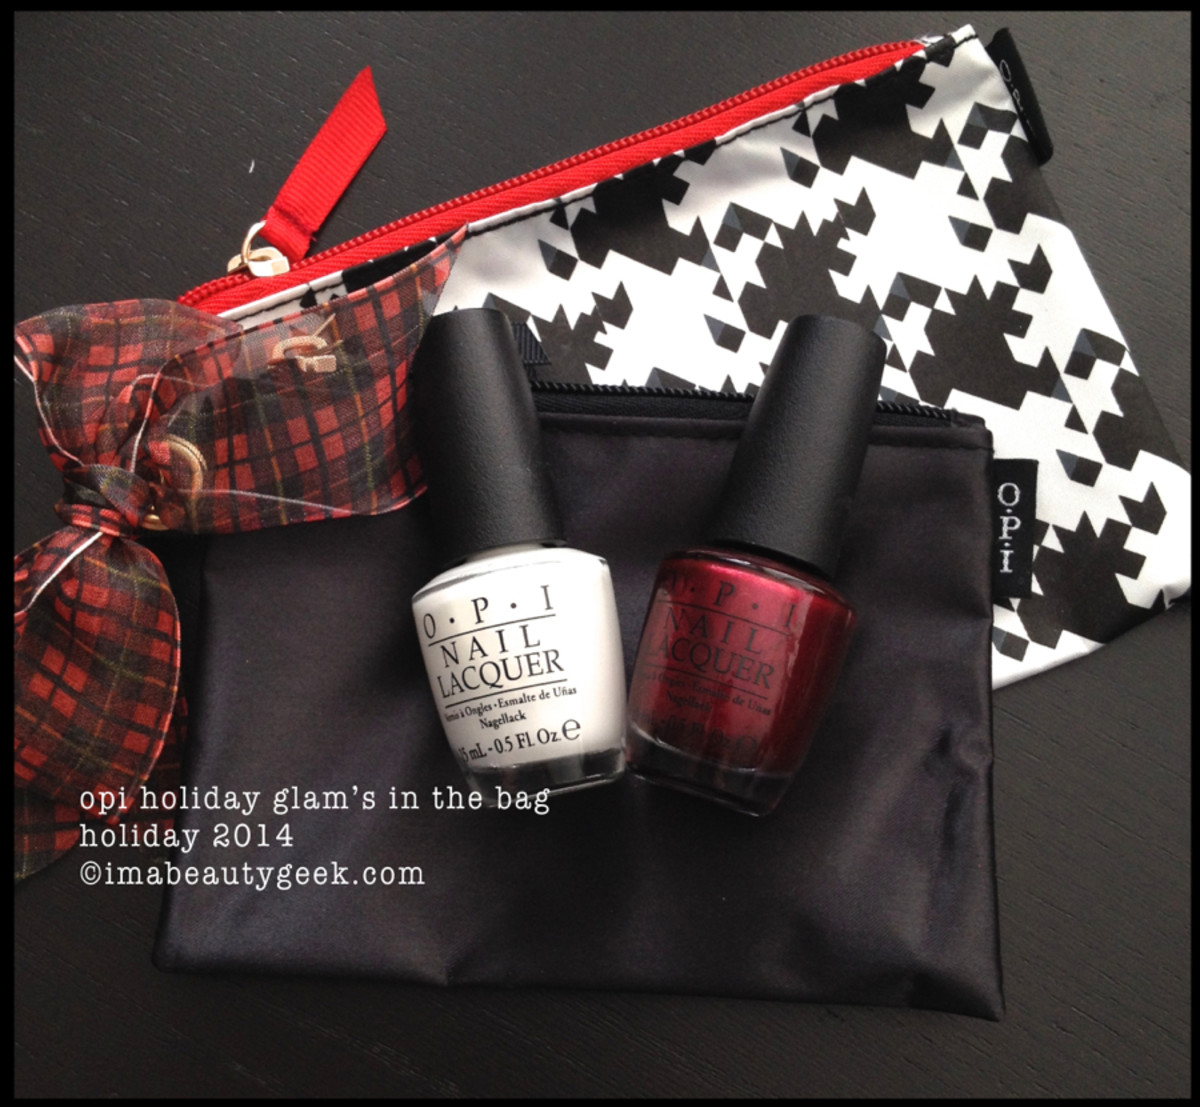 OPI Holiday 2014 Glam-2